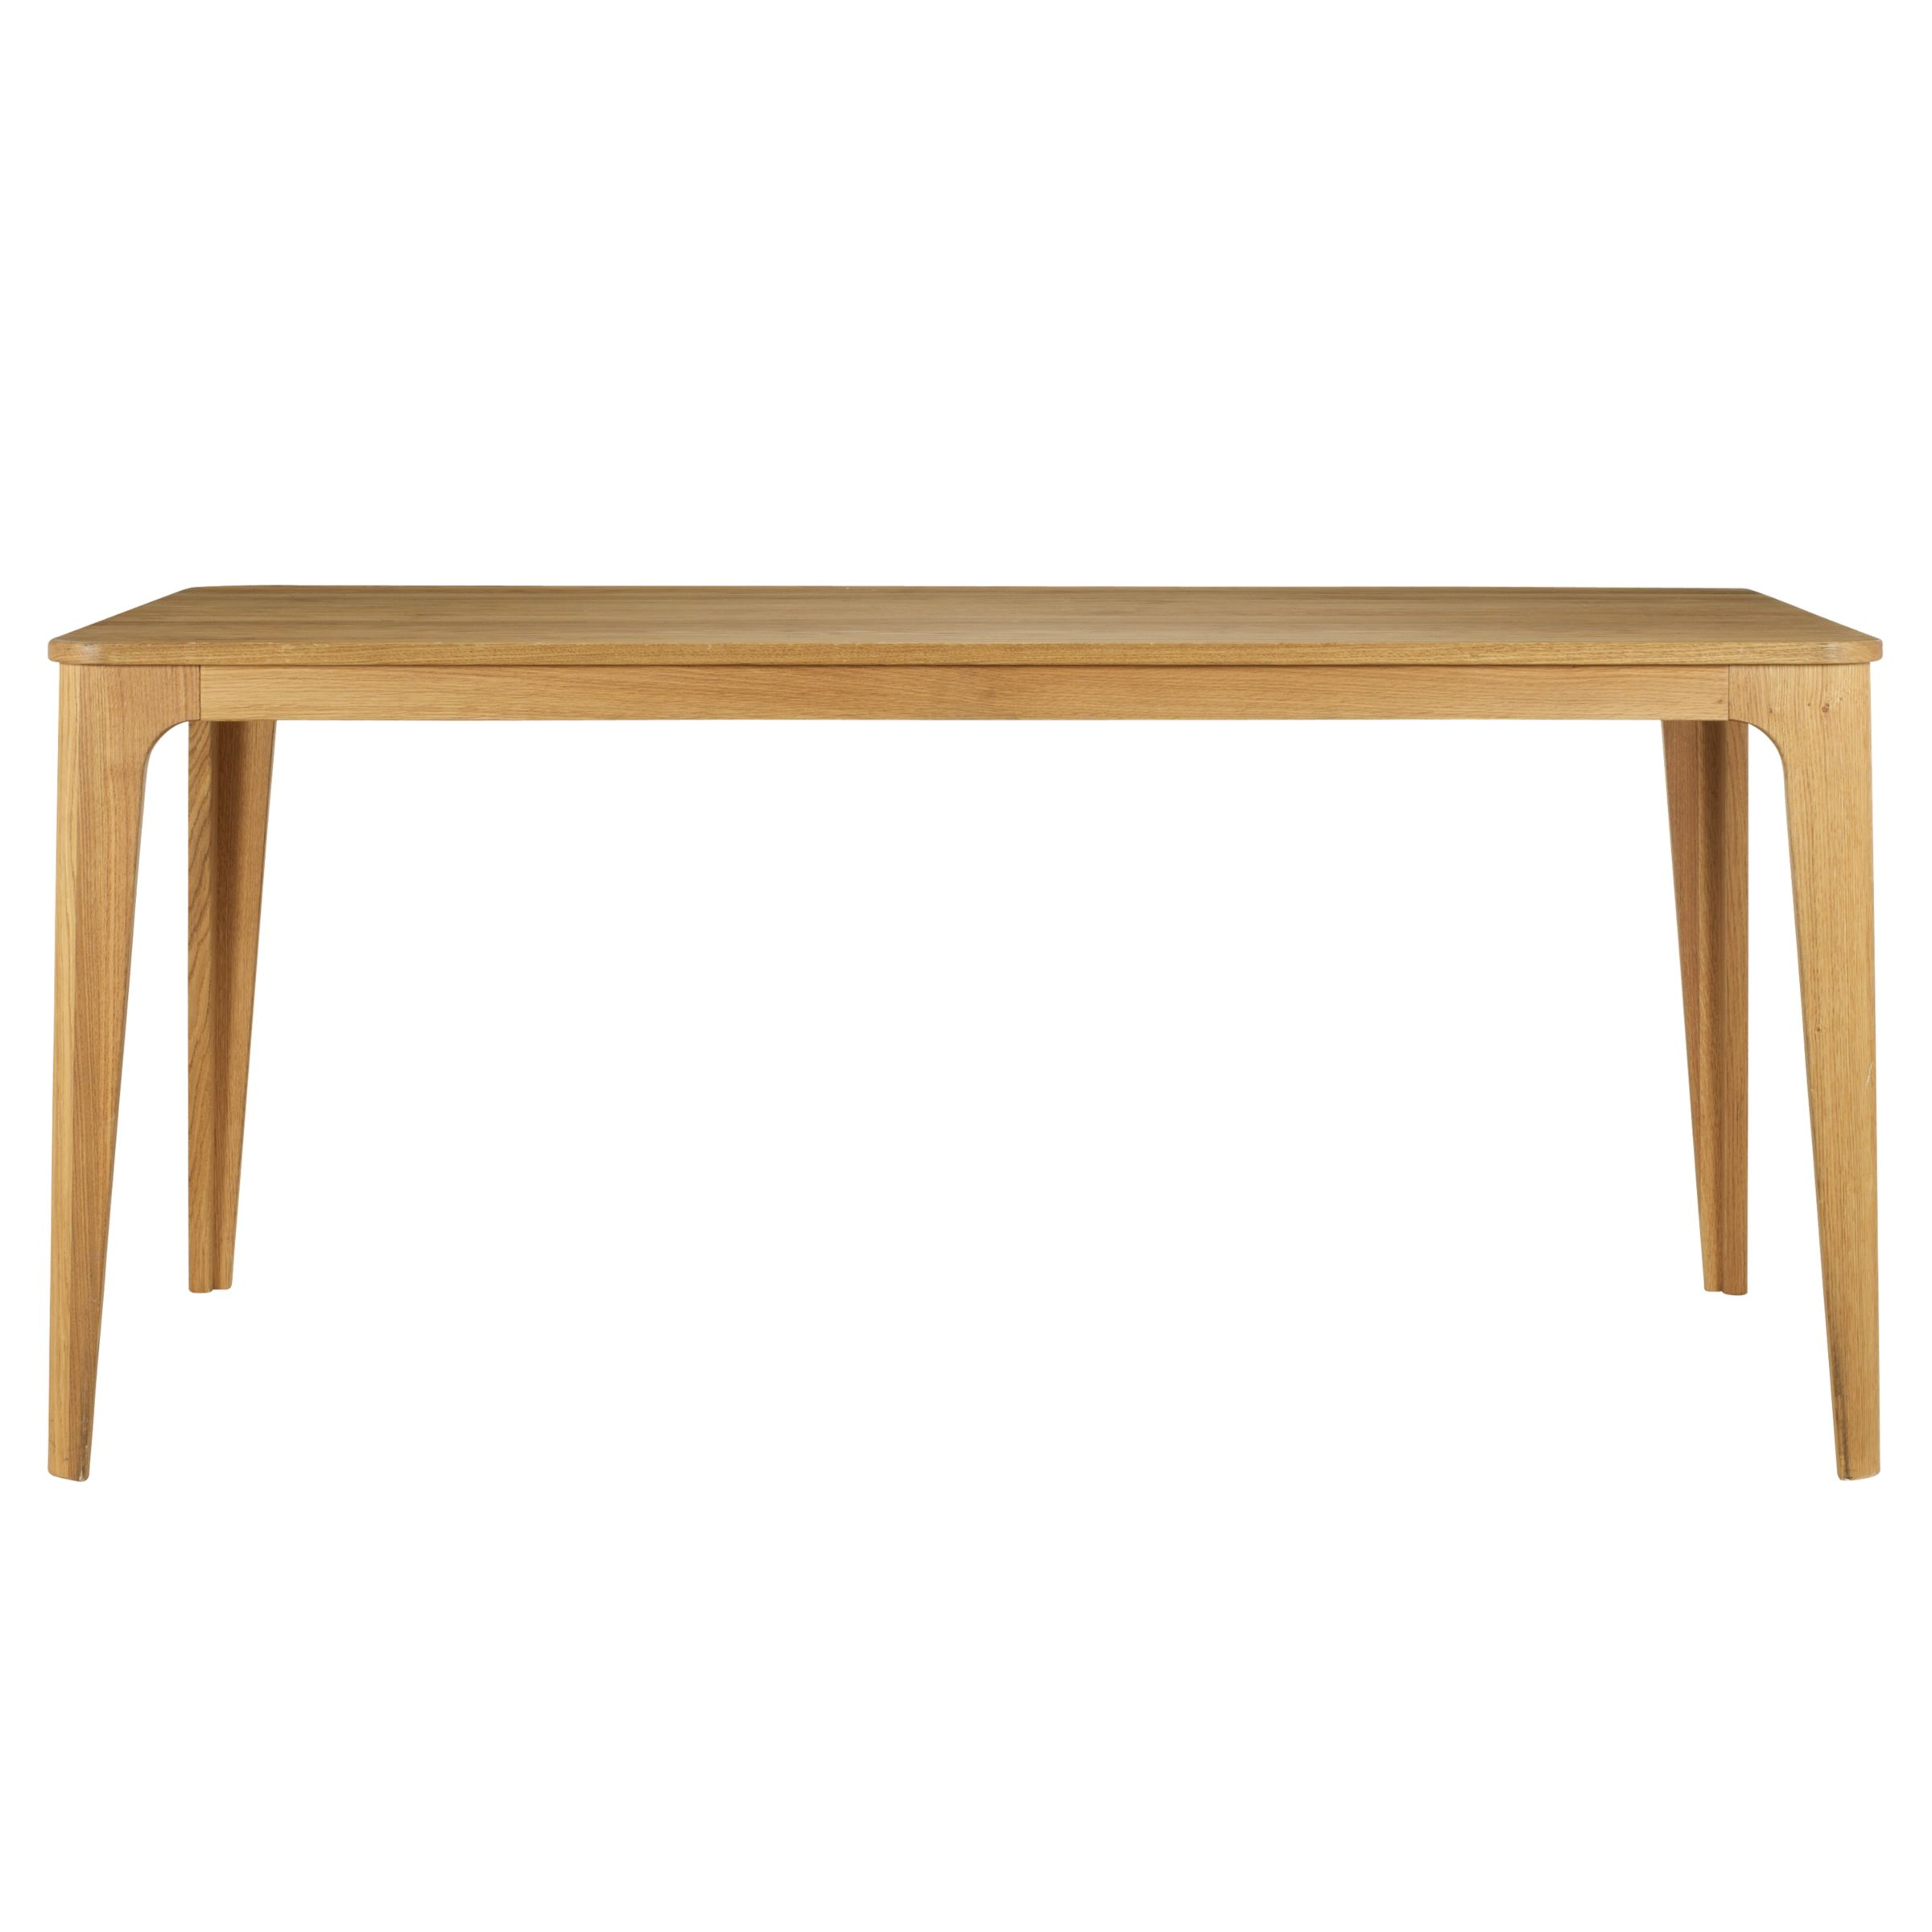 john lewis dining tables : 231012308 from www.comparestoreprices.co.uk size 1600 x 1600 jpeg 95kB